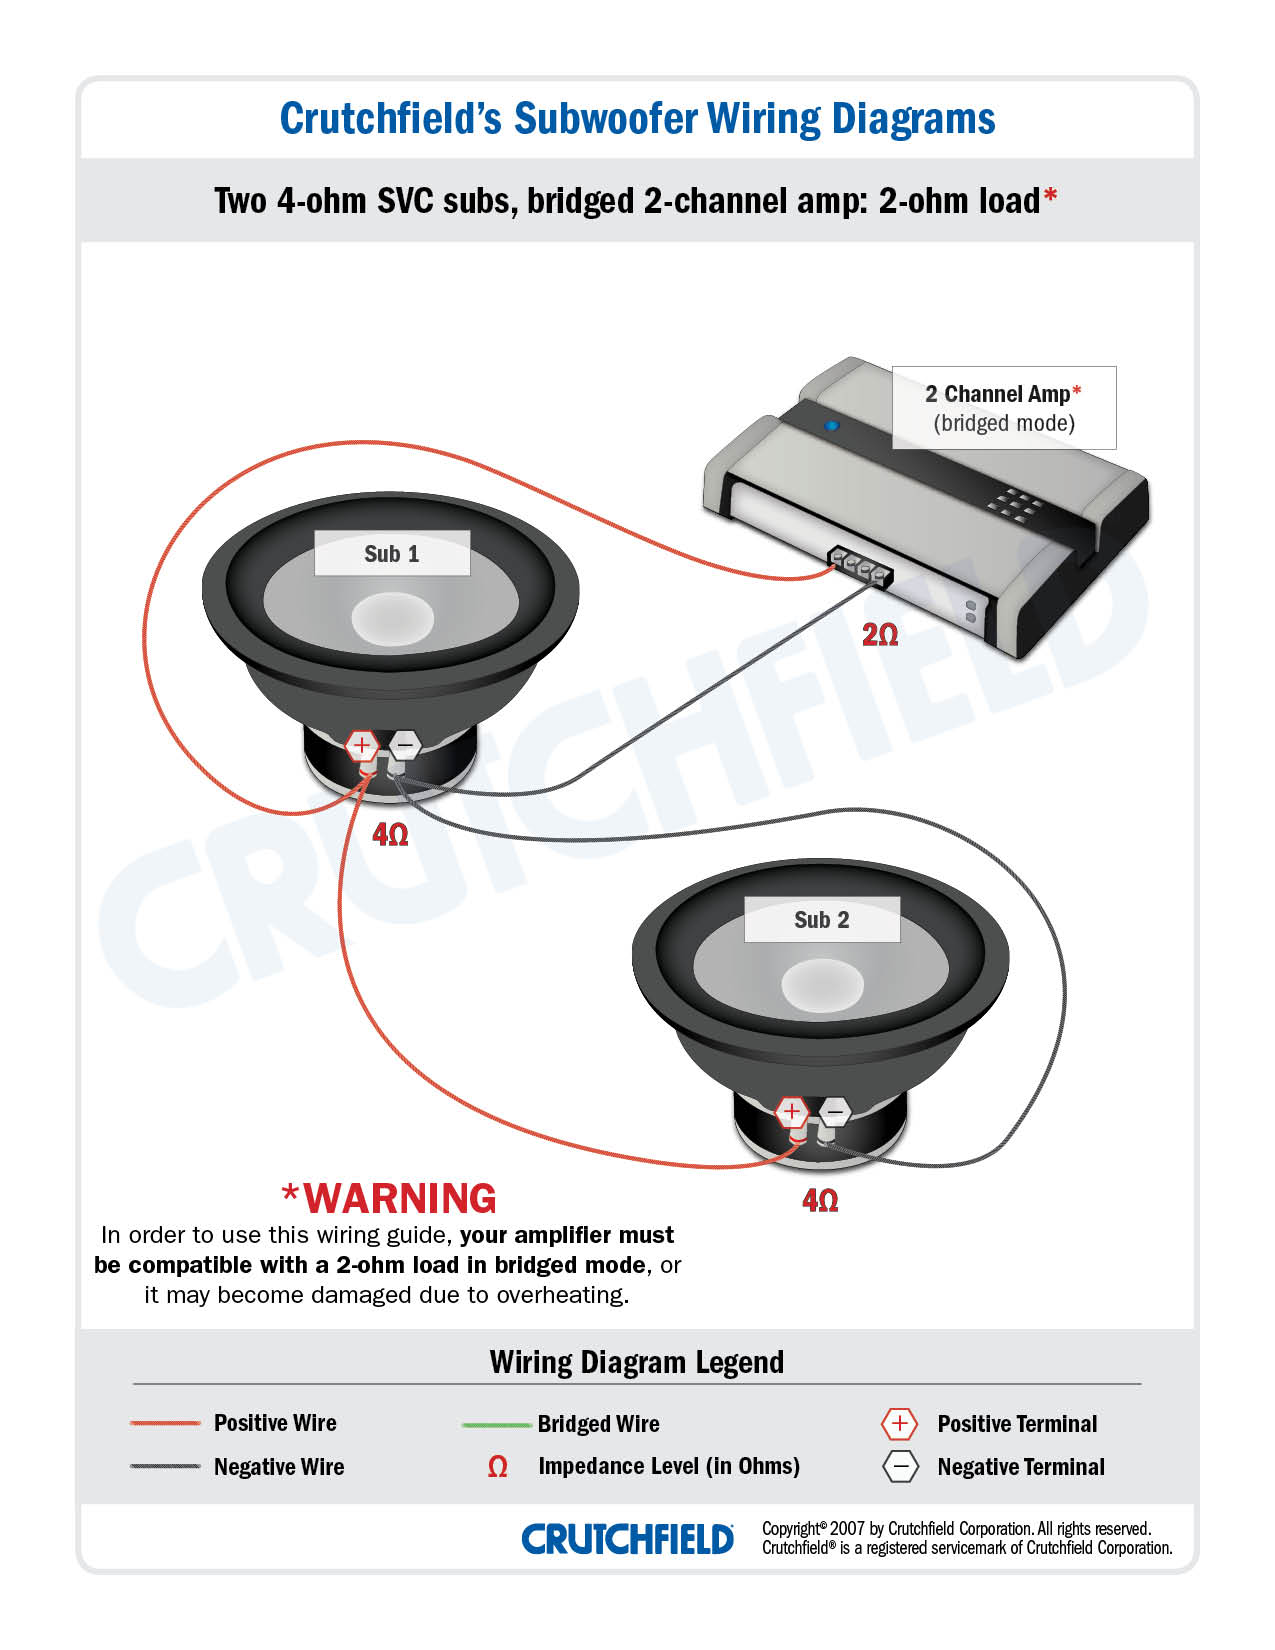 2 SVC 4 ohm 2 ch low imp subwoofer wiring diagrams kicker comp r 12 wiring diagram at webbmarketing.co